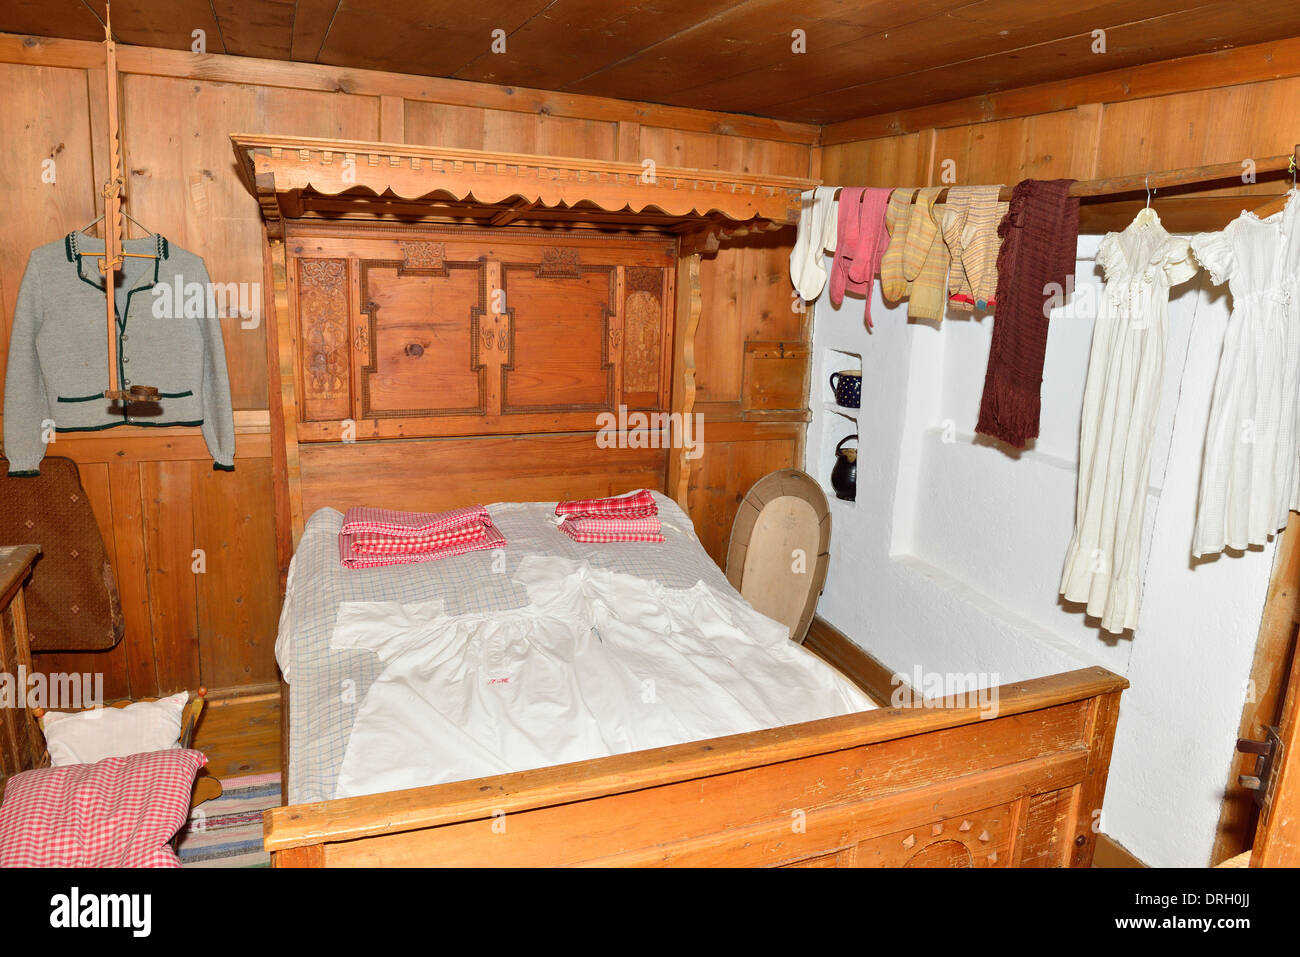 Typical bedroom in a traditonal Bavarian house with wood for panels, bed ,room furniture  with clothes hung to dry in same room - Stock Image